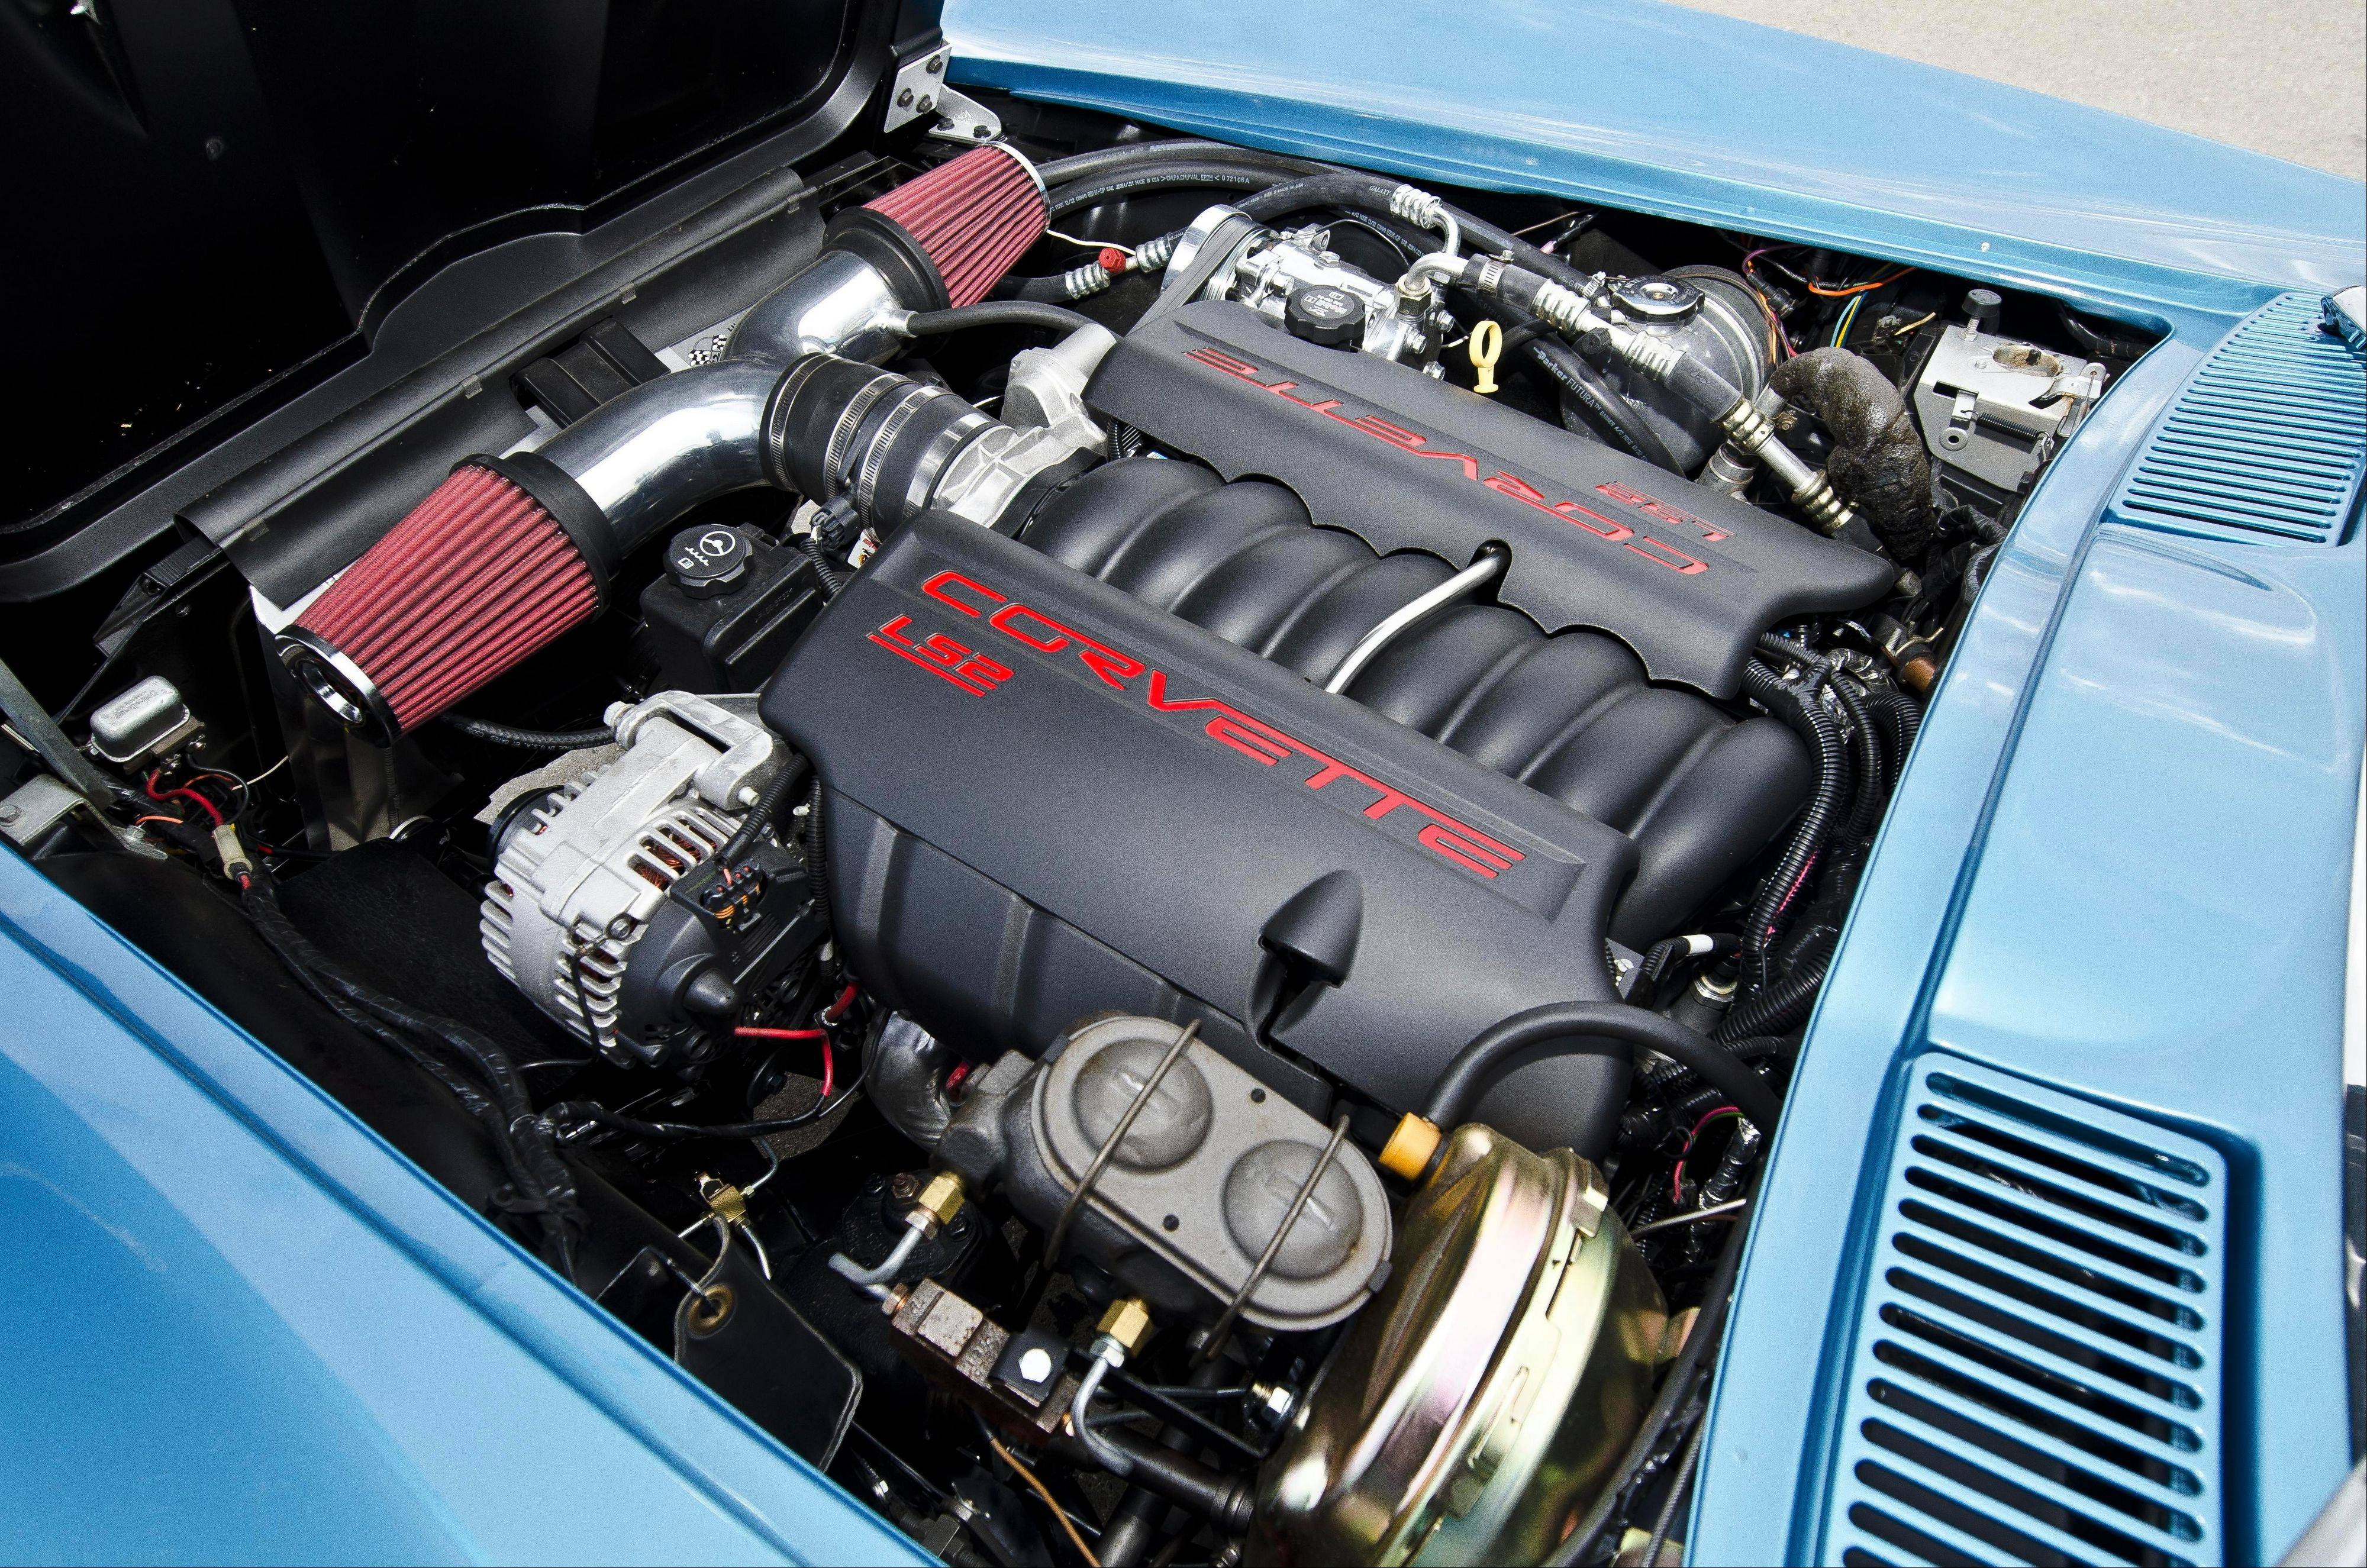 This vintage Vette has a young, powerful powerplant under its hood.